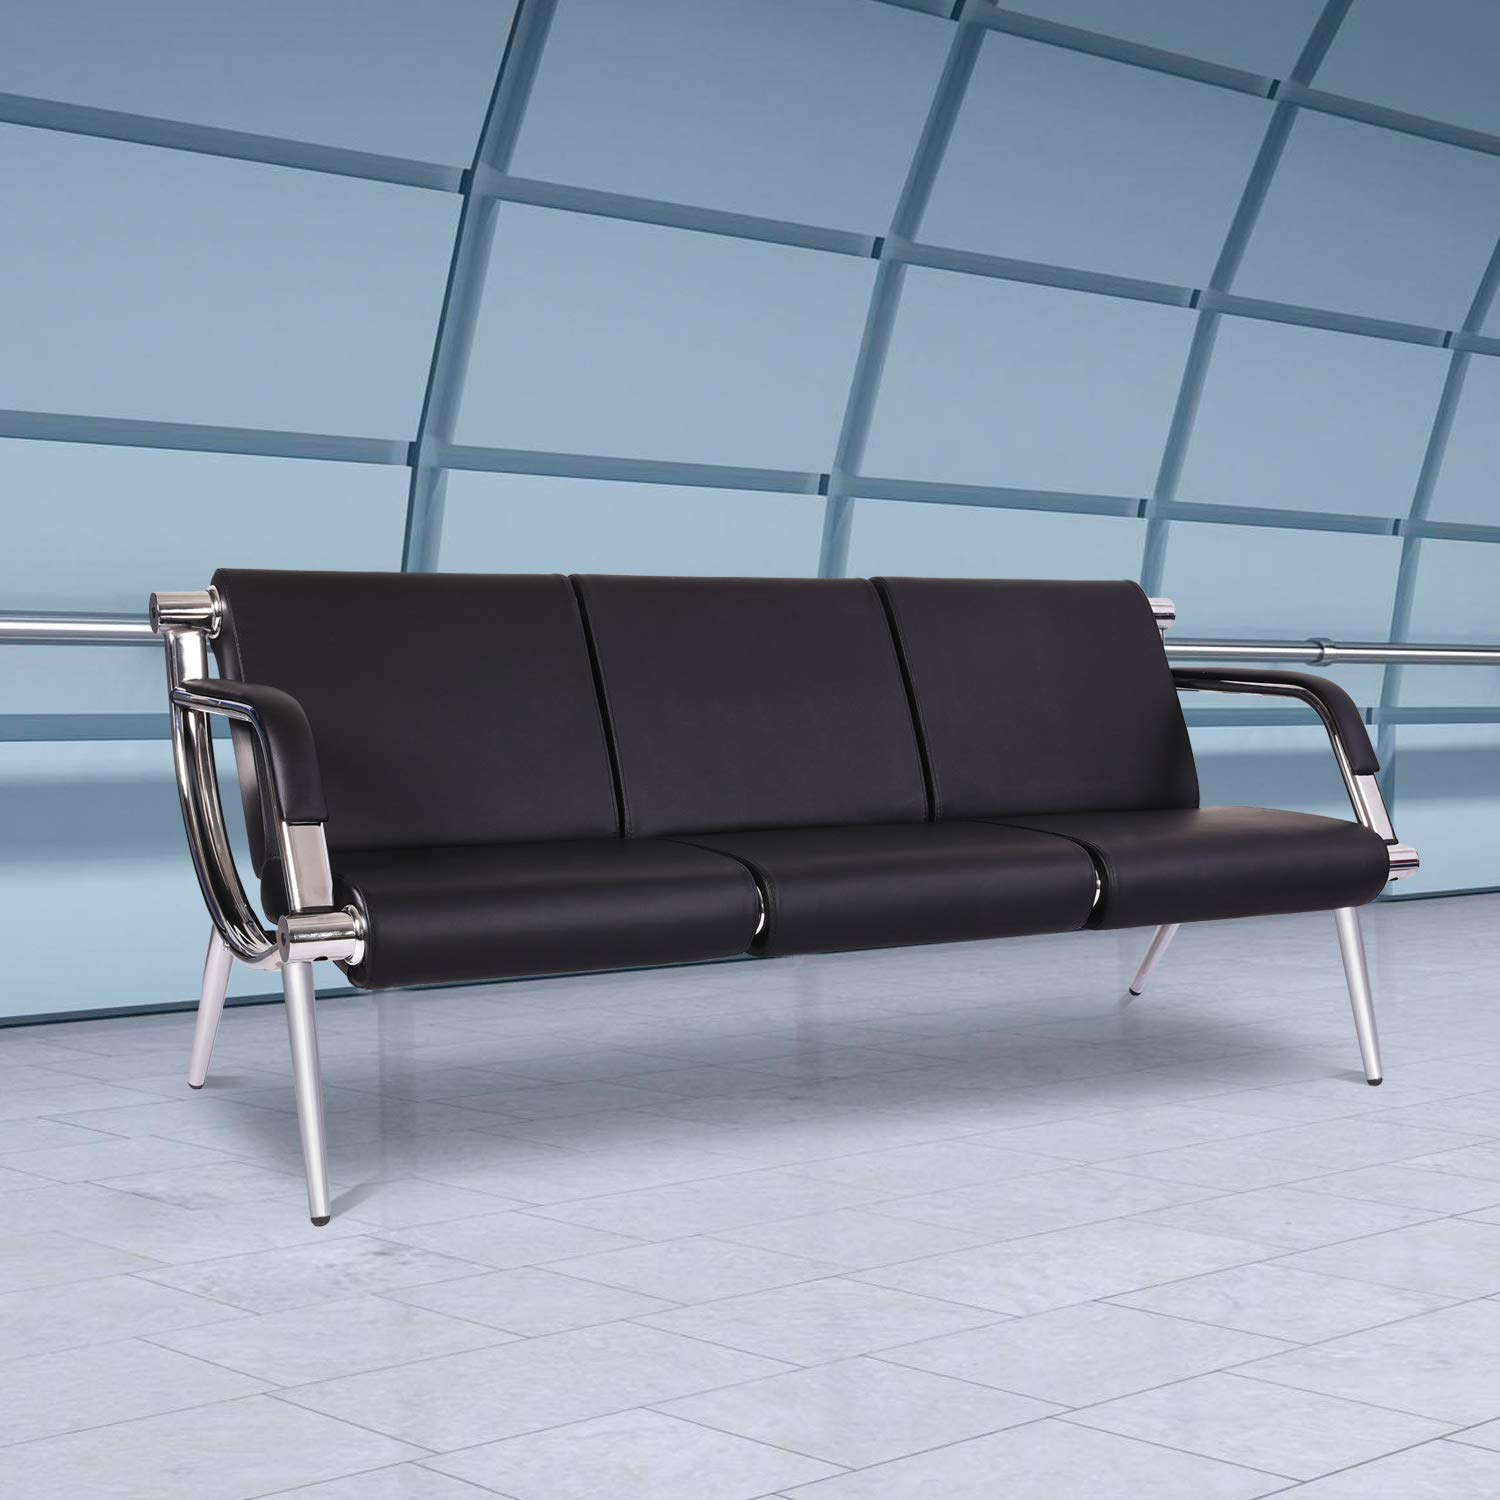 PU Leather Waiting Room Chairs 3-seat Airport Seating Reception Bench for Clinic Office School Salon with Arms by Kinbor